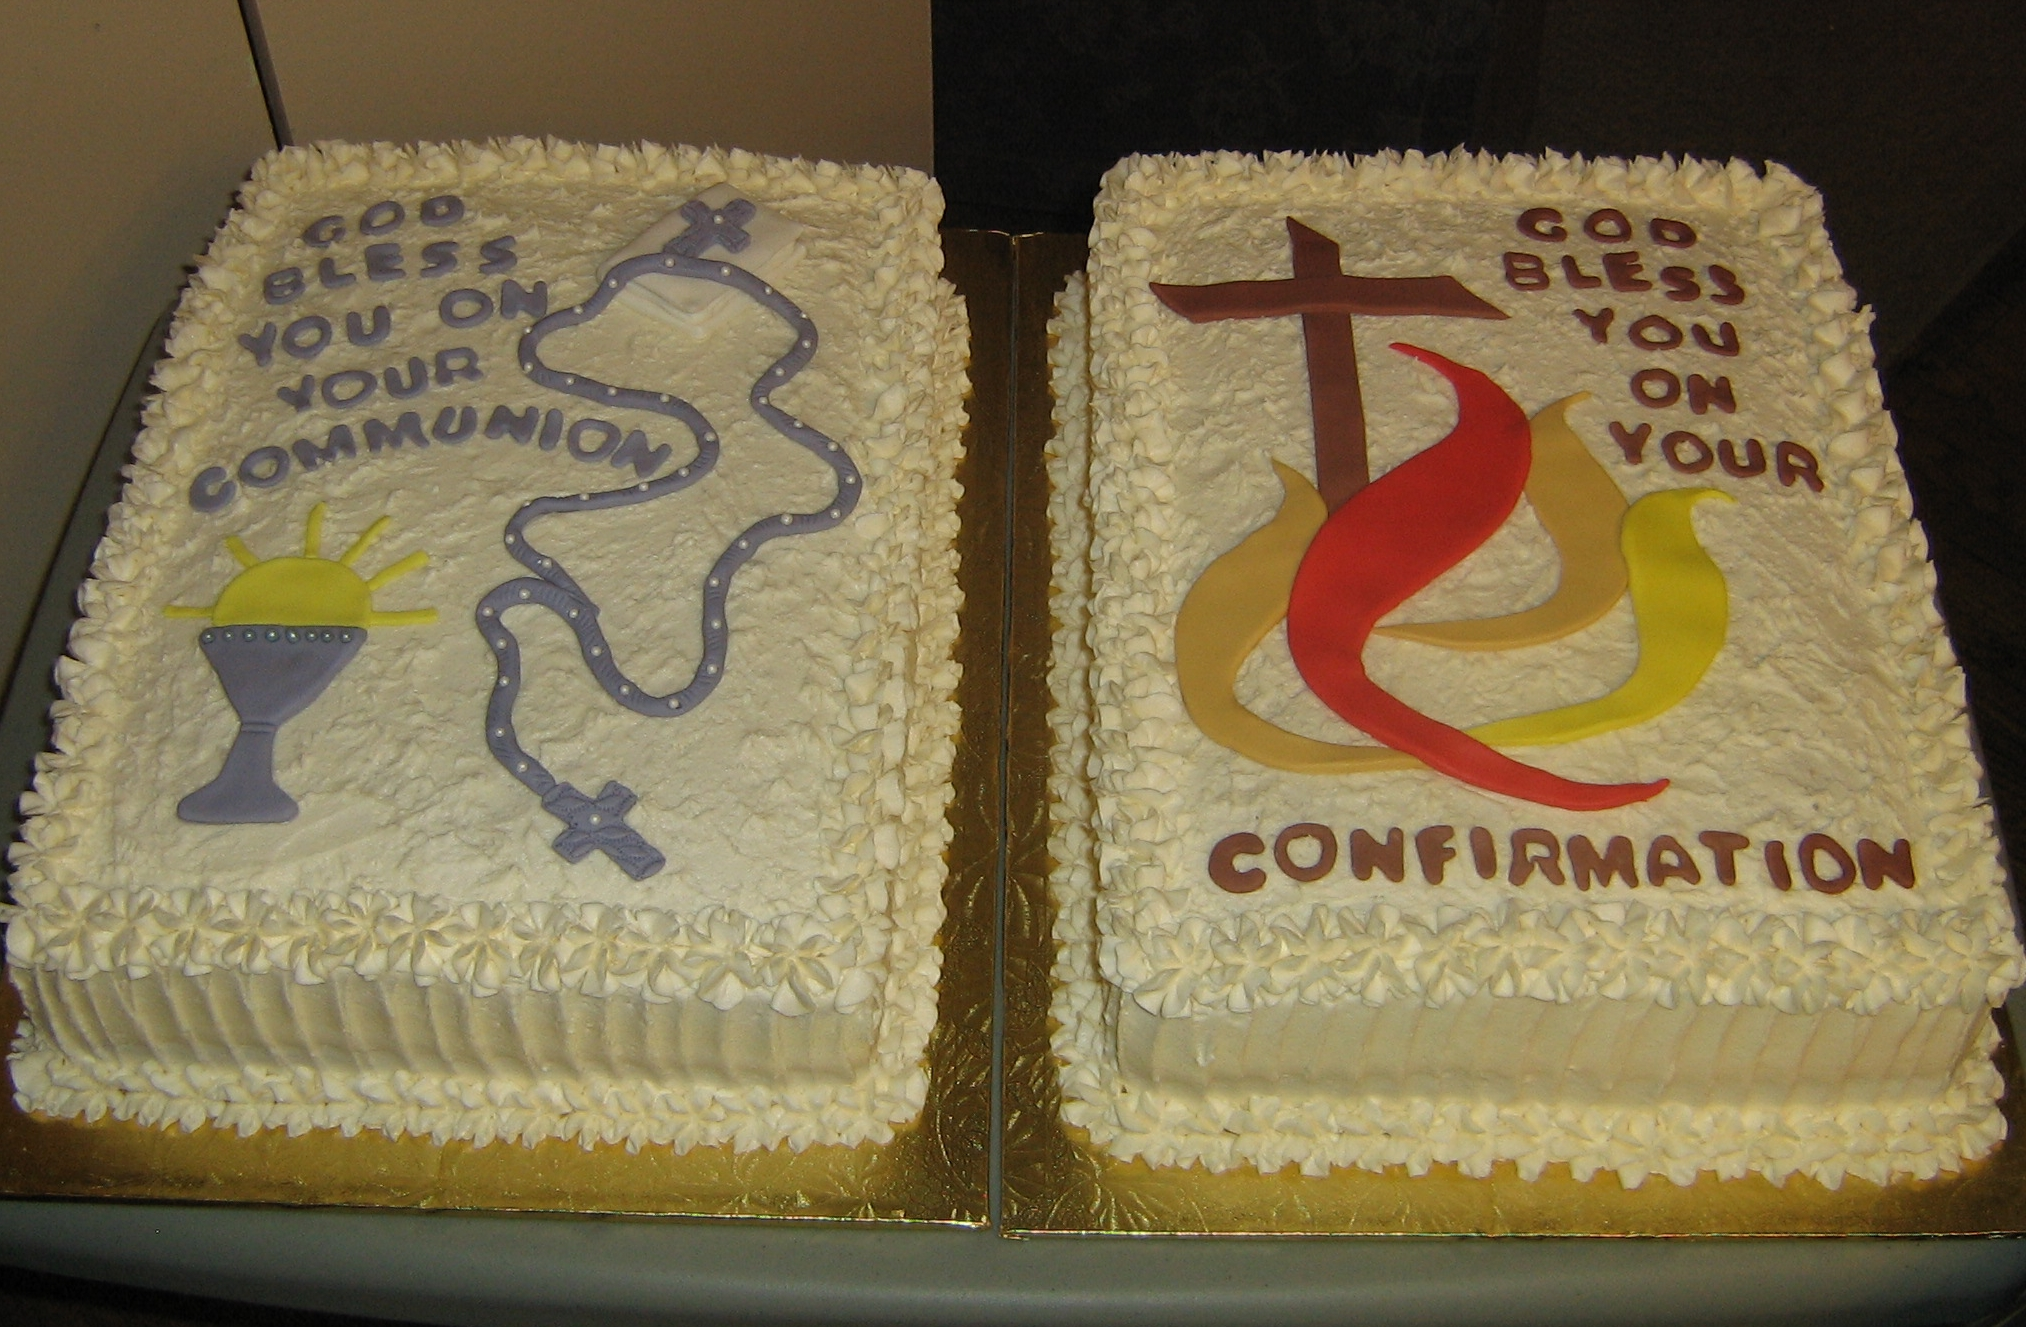 Confirmation and Communion Cakes